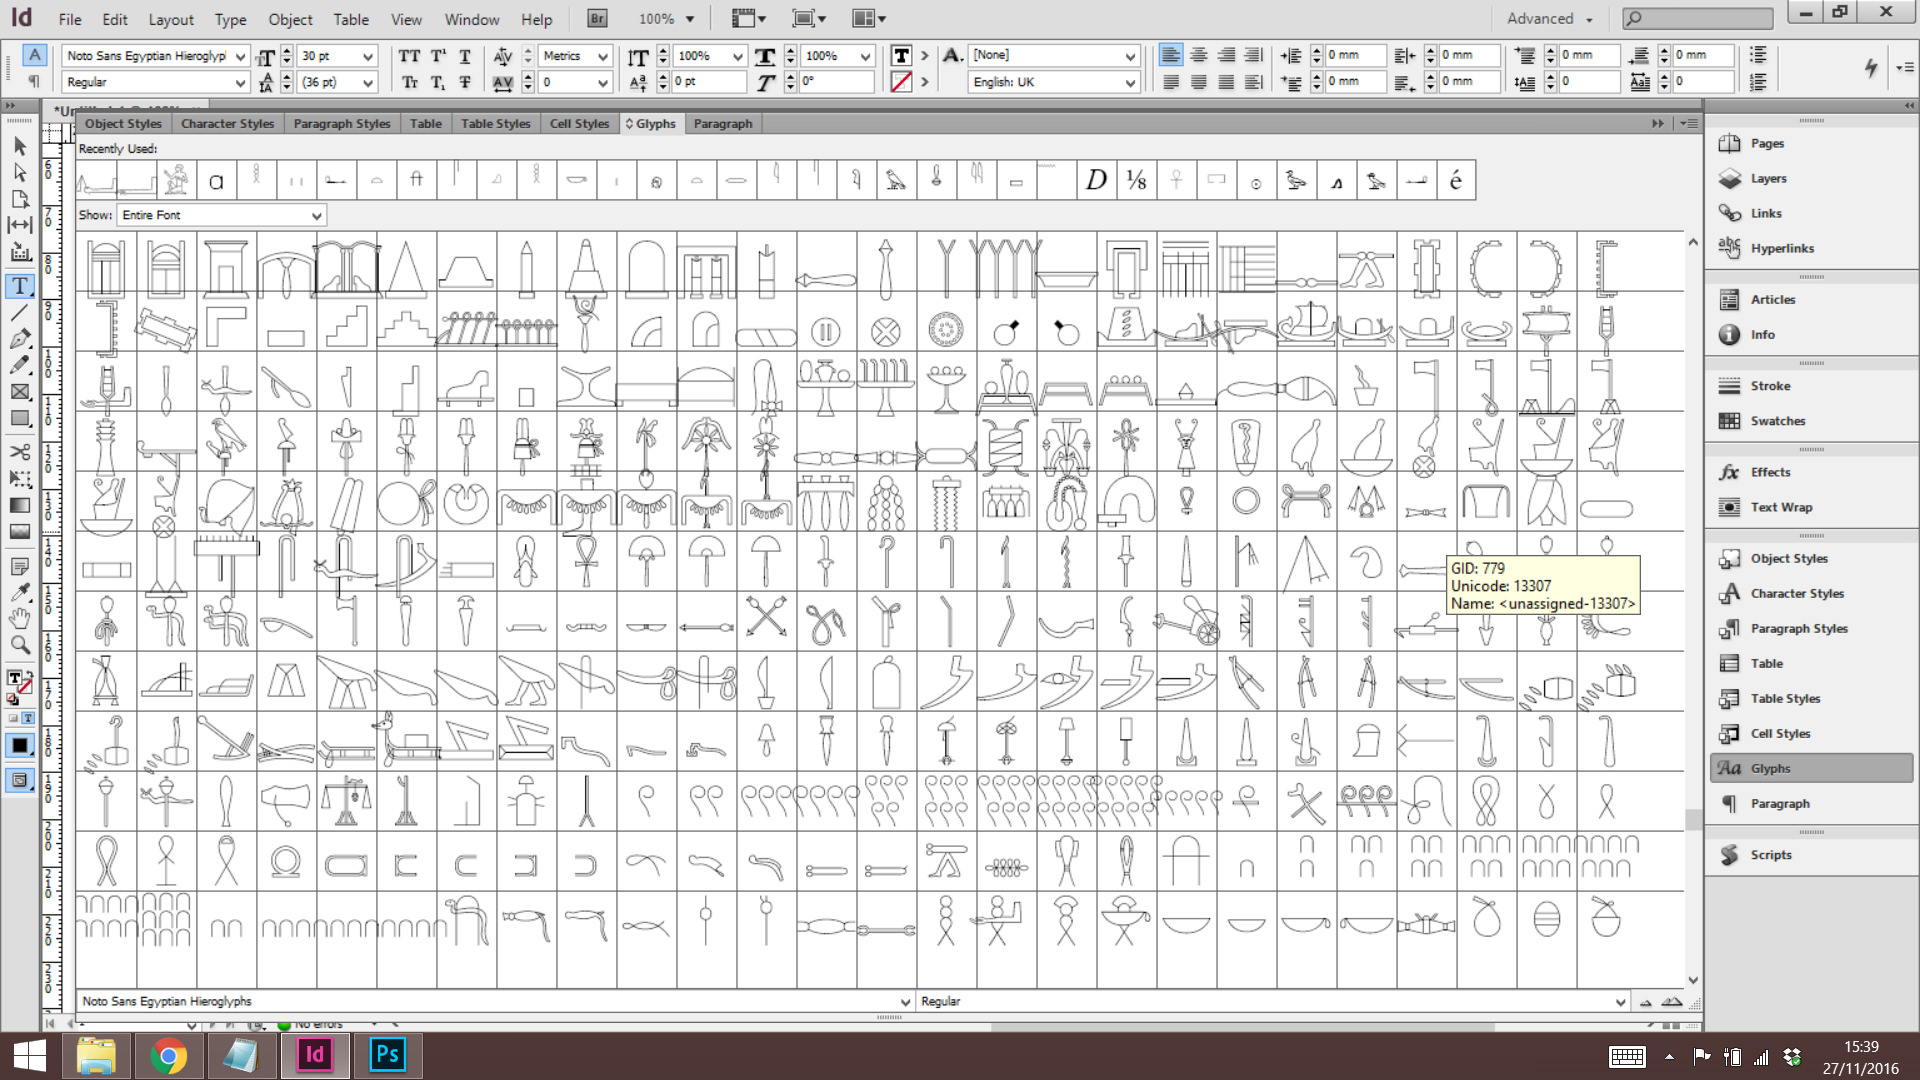 A screenshot showing some of the hieroglyphs in the Google Noto Egyptian Hieroglyphs font